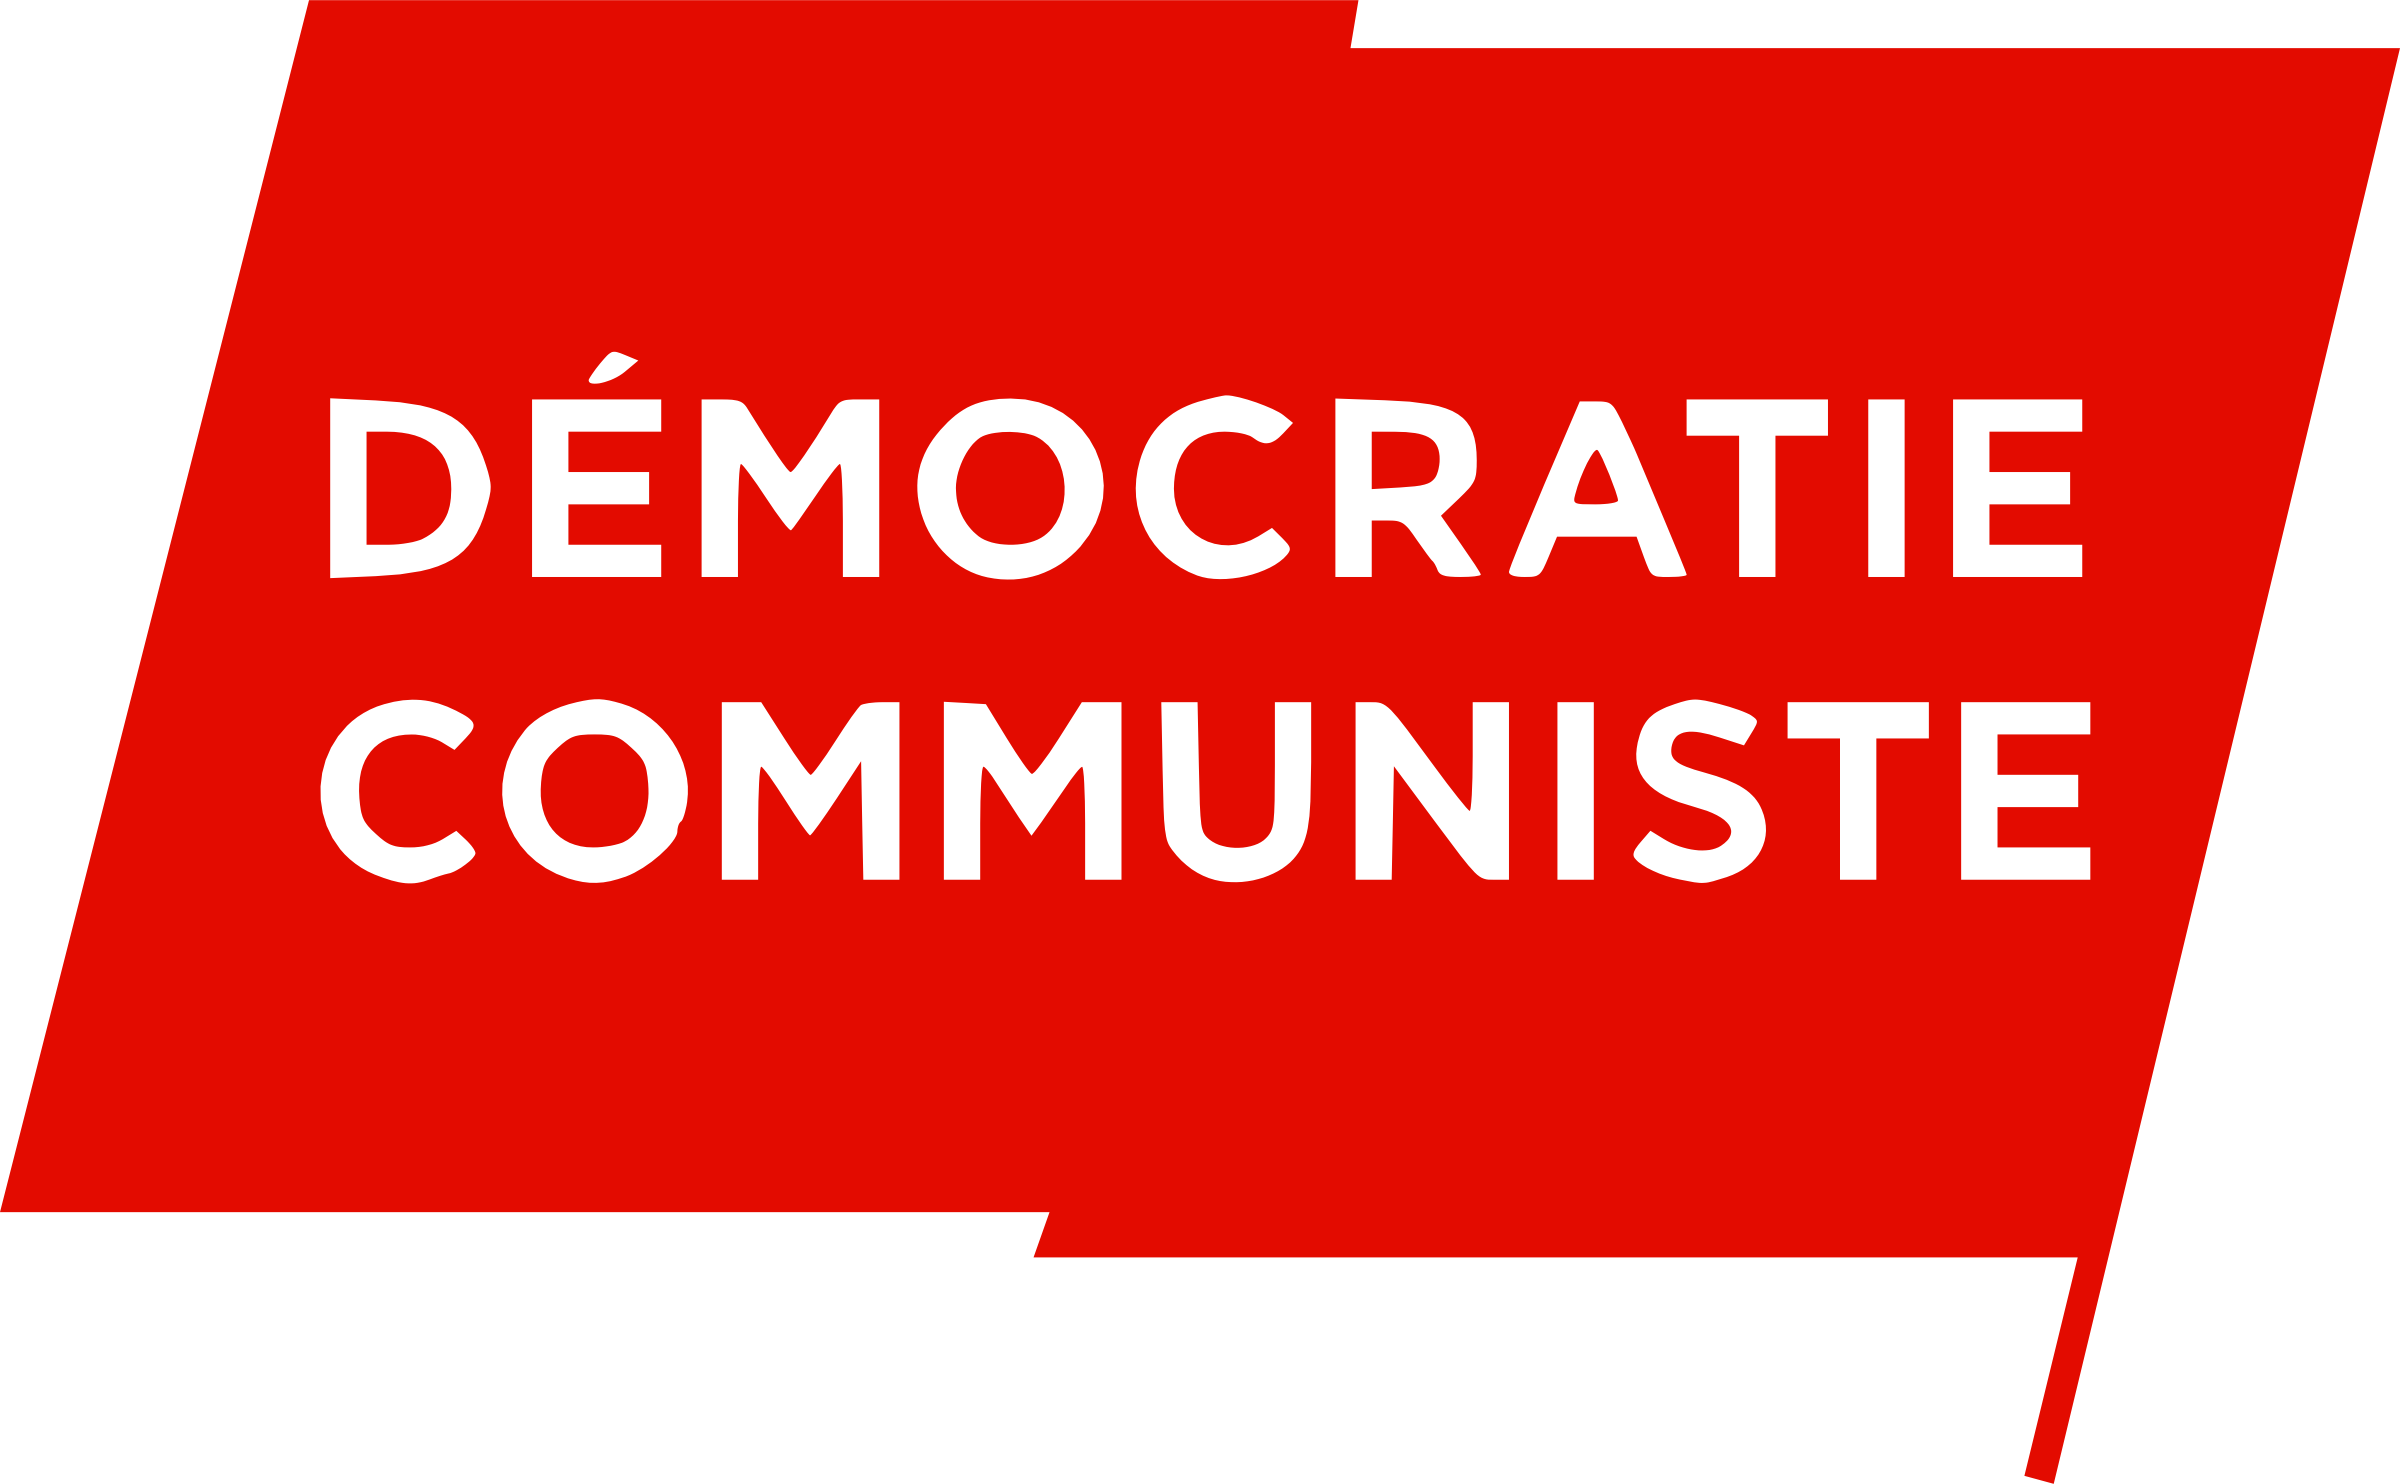 Communist Democracy by KCJV